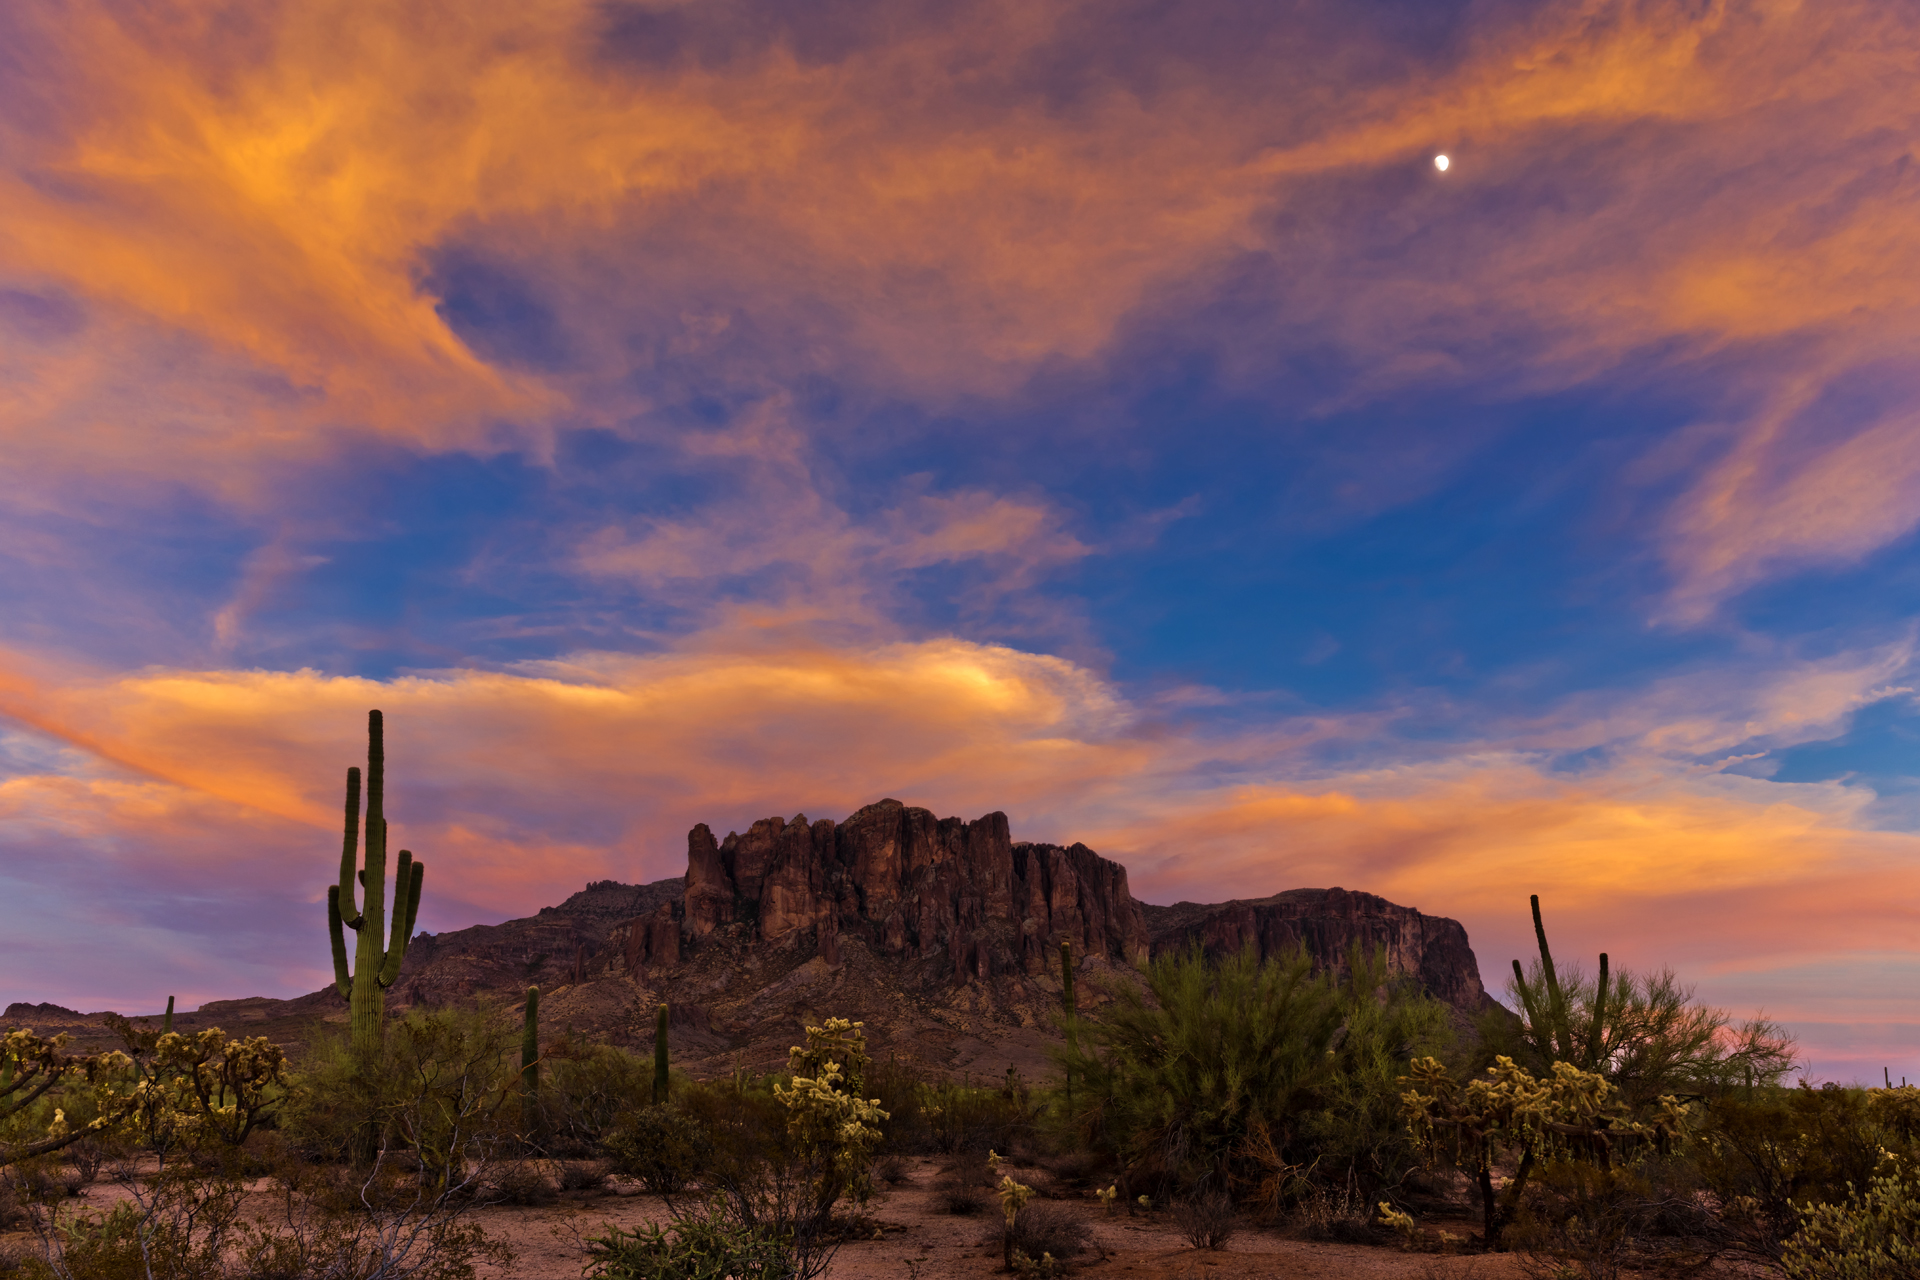 Sunset over Lost Dutchman State Park near the Superstition Mountains